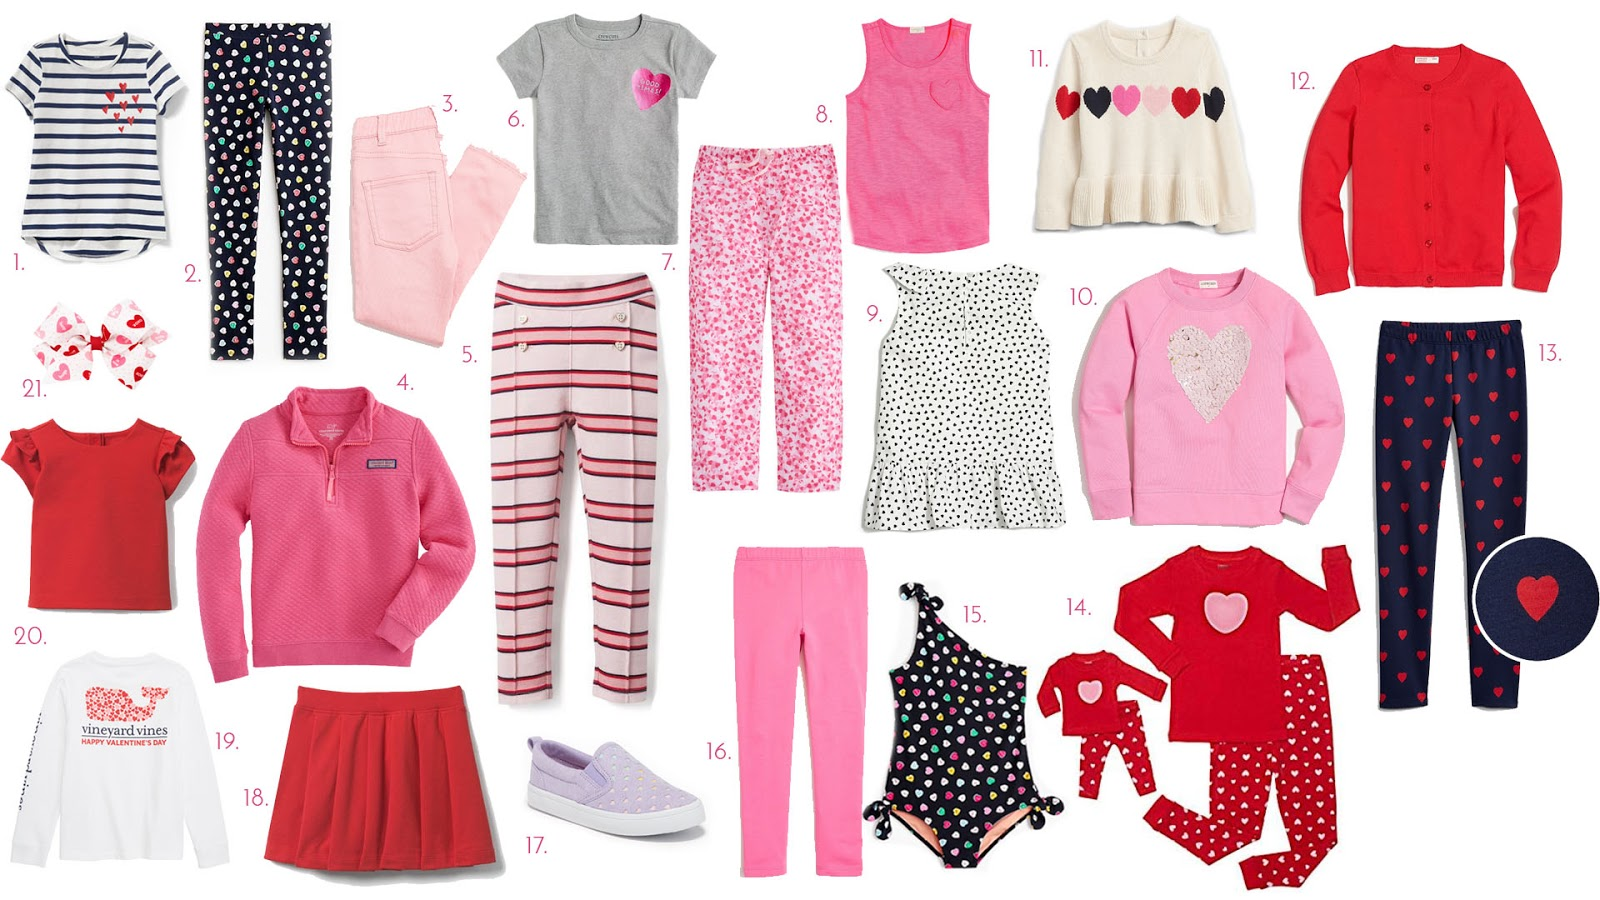 0a316a3ff50f7 Stripe Top with Hearts (sizes ). 2. Conversation Heart Leggings (sizes ).  3. Pink Denim (sizes ). 4. Pink Popover (sizes ). 5. Stripe Pants (sizes ).  6.